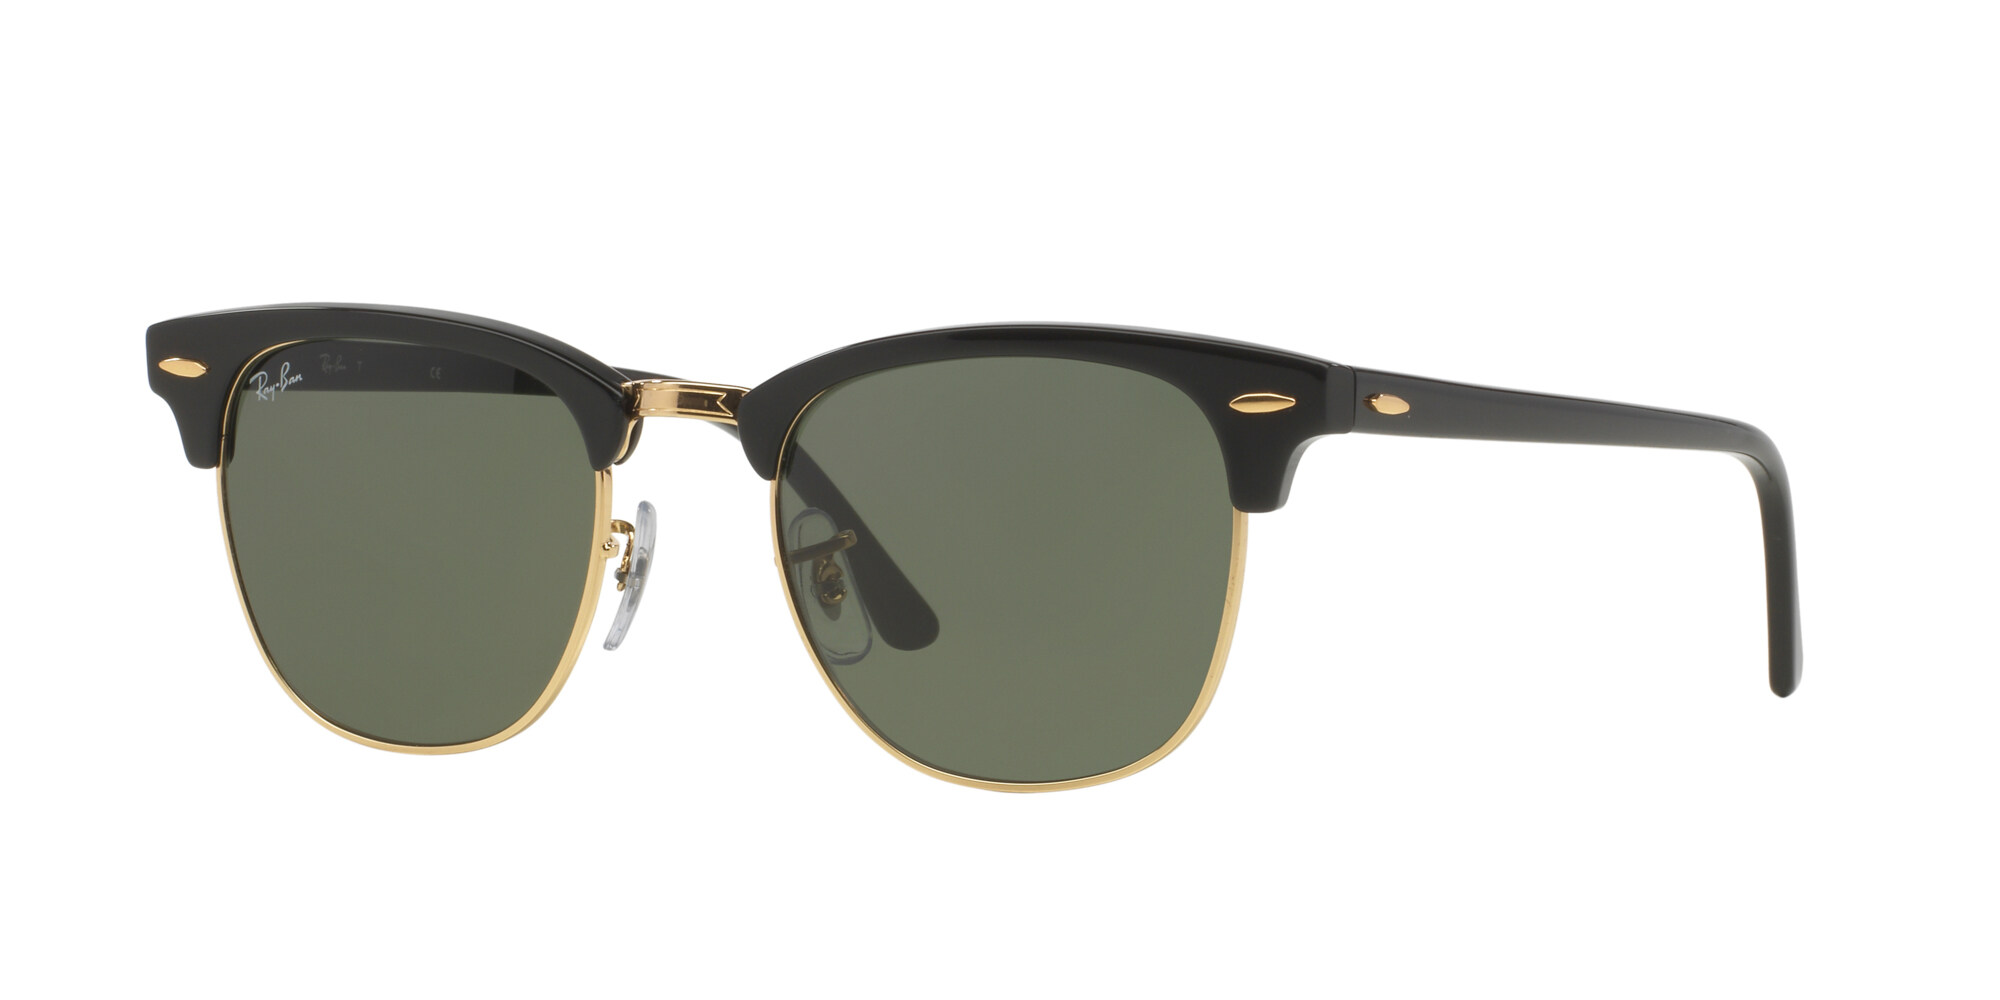 ray ban prescription sunglasses malaysia  ray ban clubmaster crystal green lenses rb3016 w0365 man sunglass